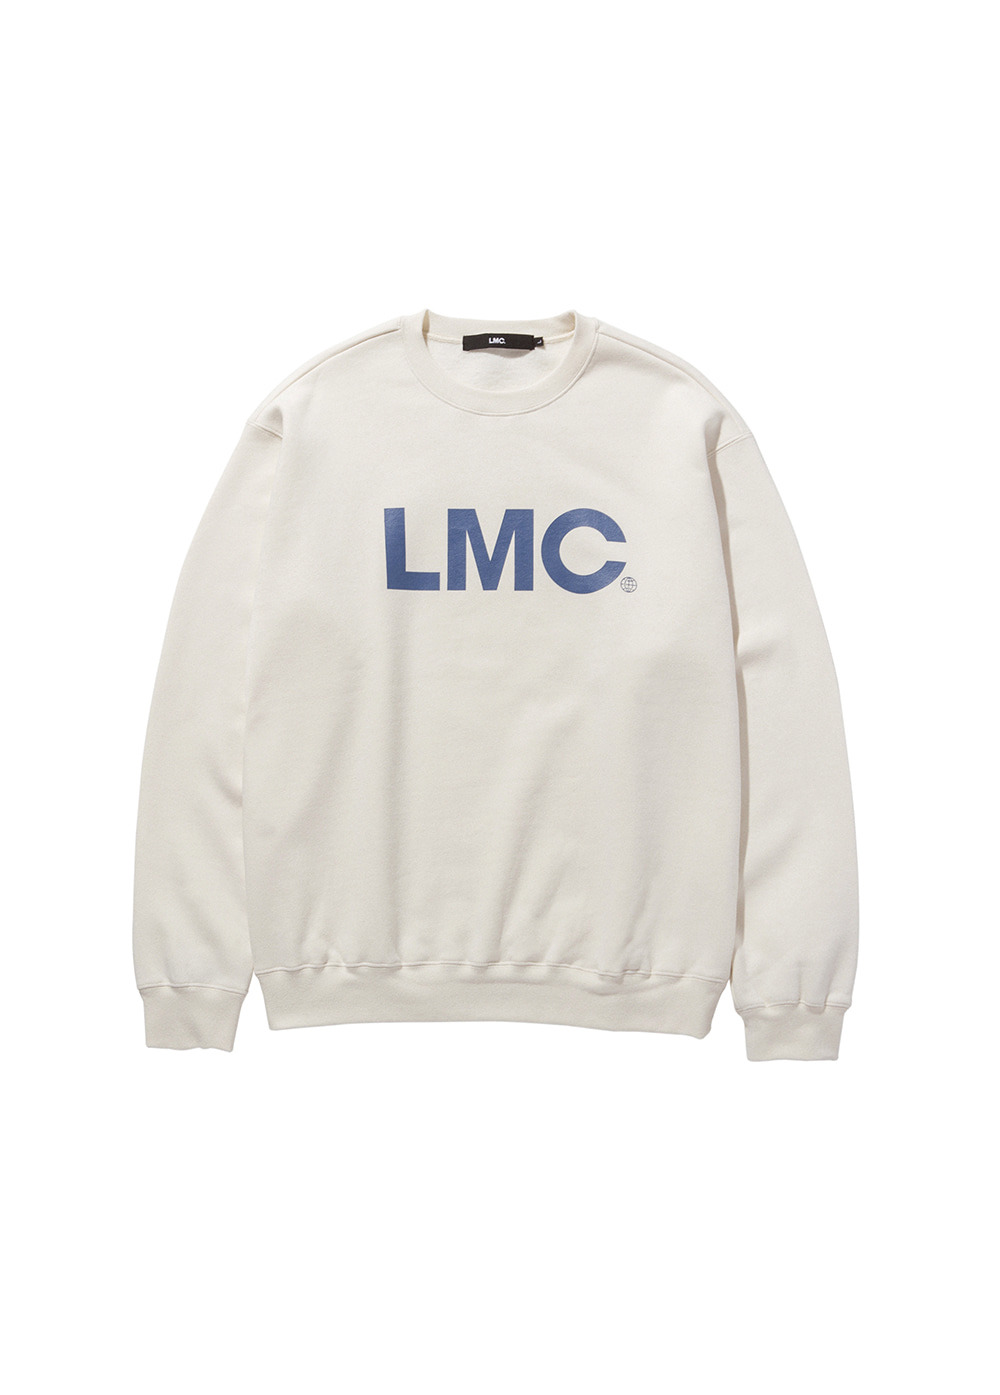 LMC OG WHEEL SWEATSHIRT cream